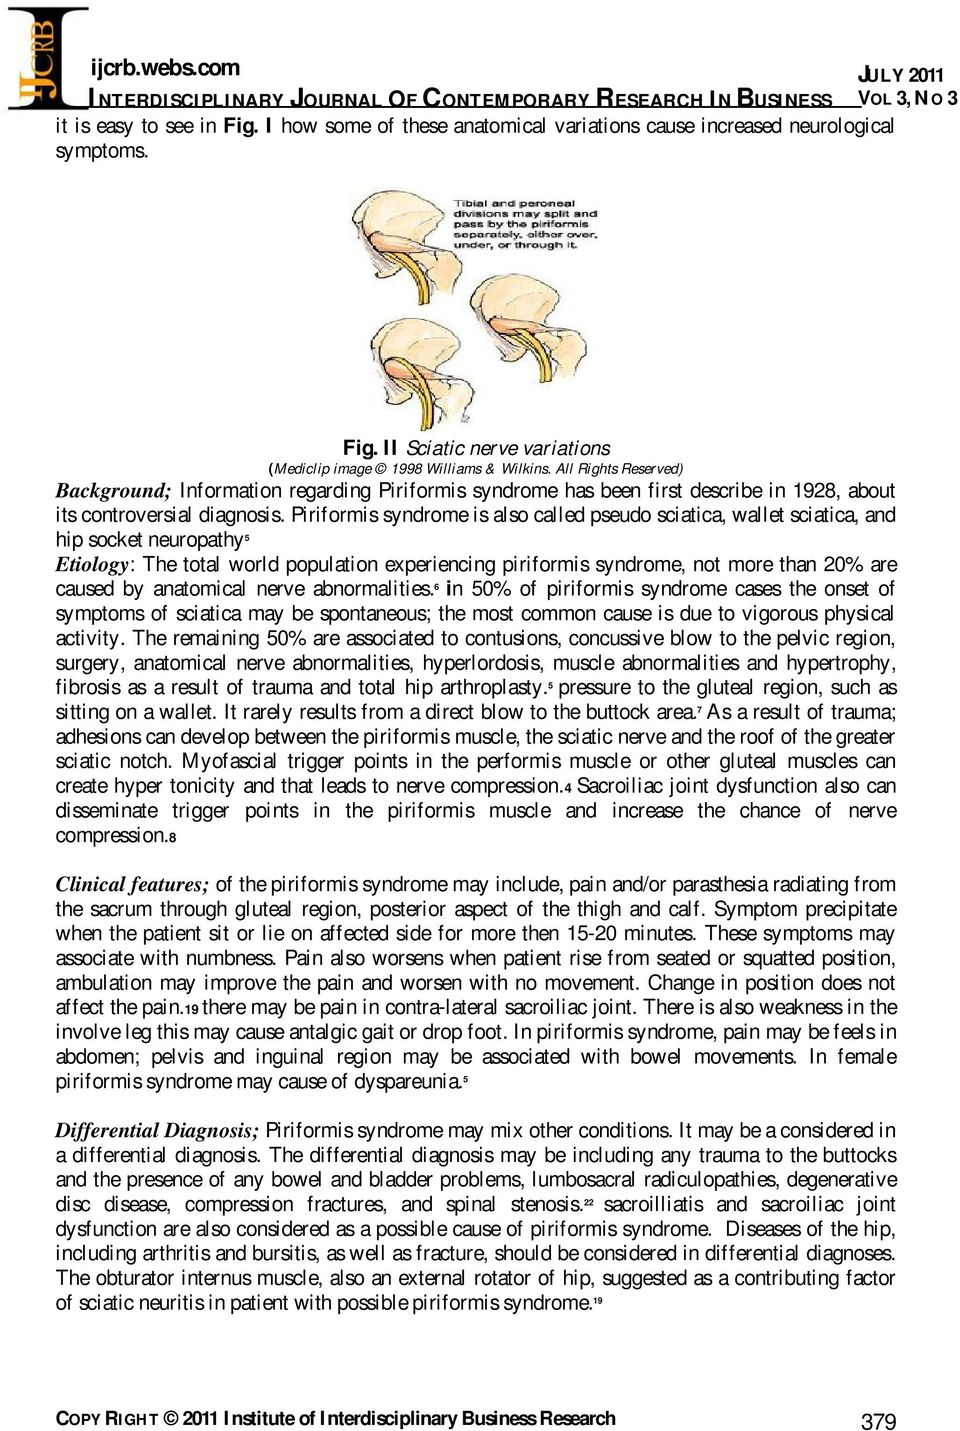 Piriformis Syndrome Exercises Pdf